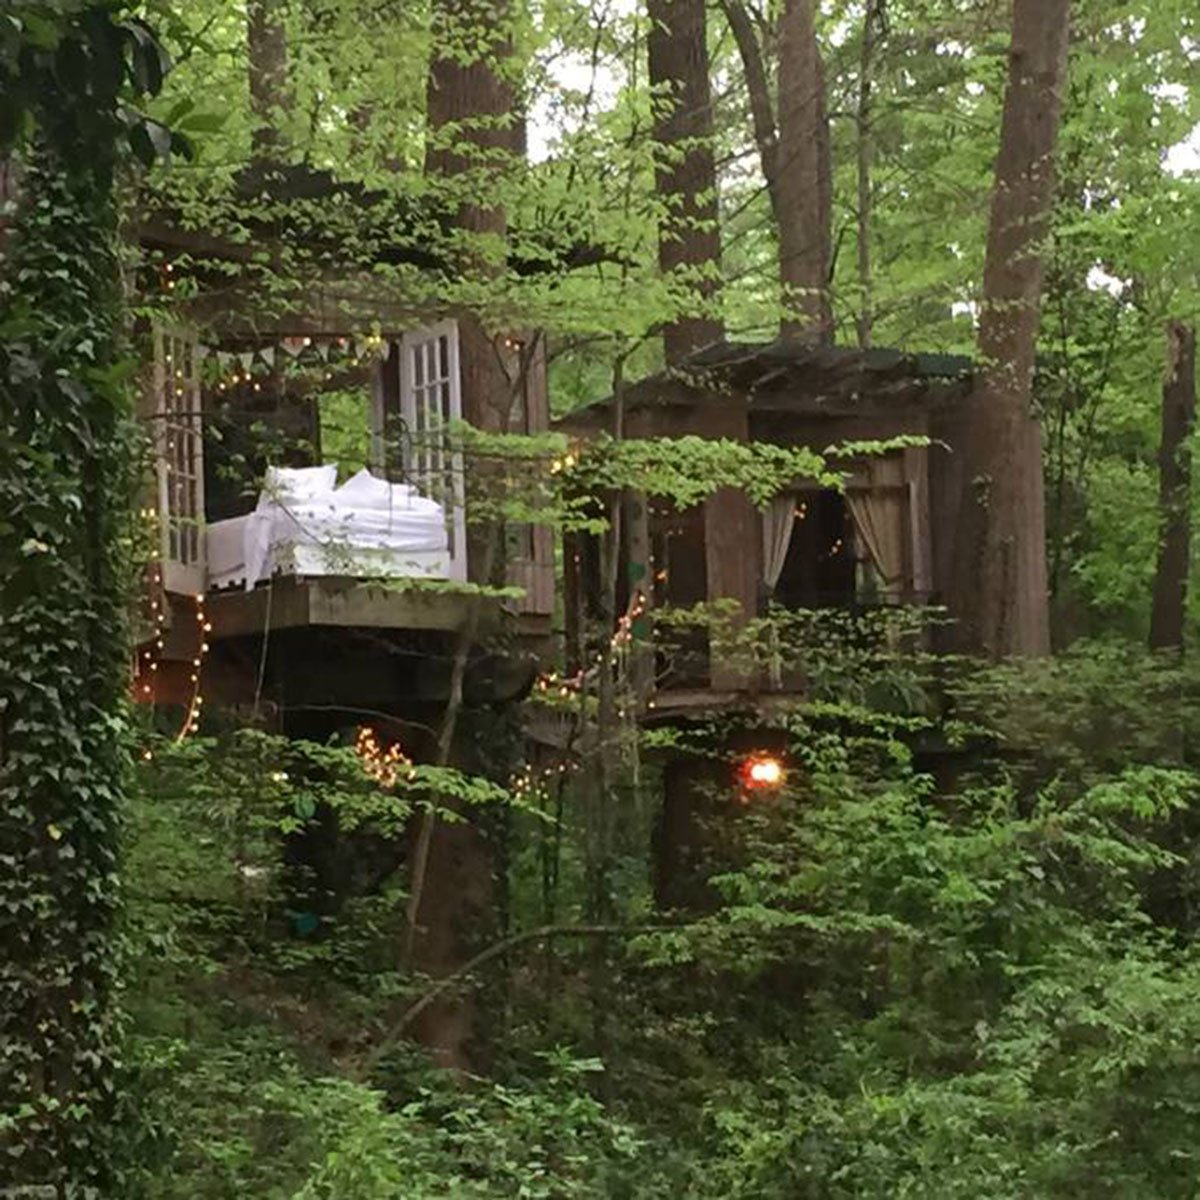 The Most Popular Listing On Airbnb Is A Secluded Treehouse